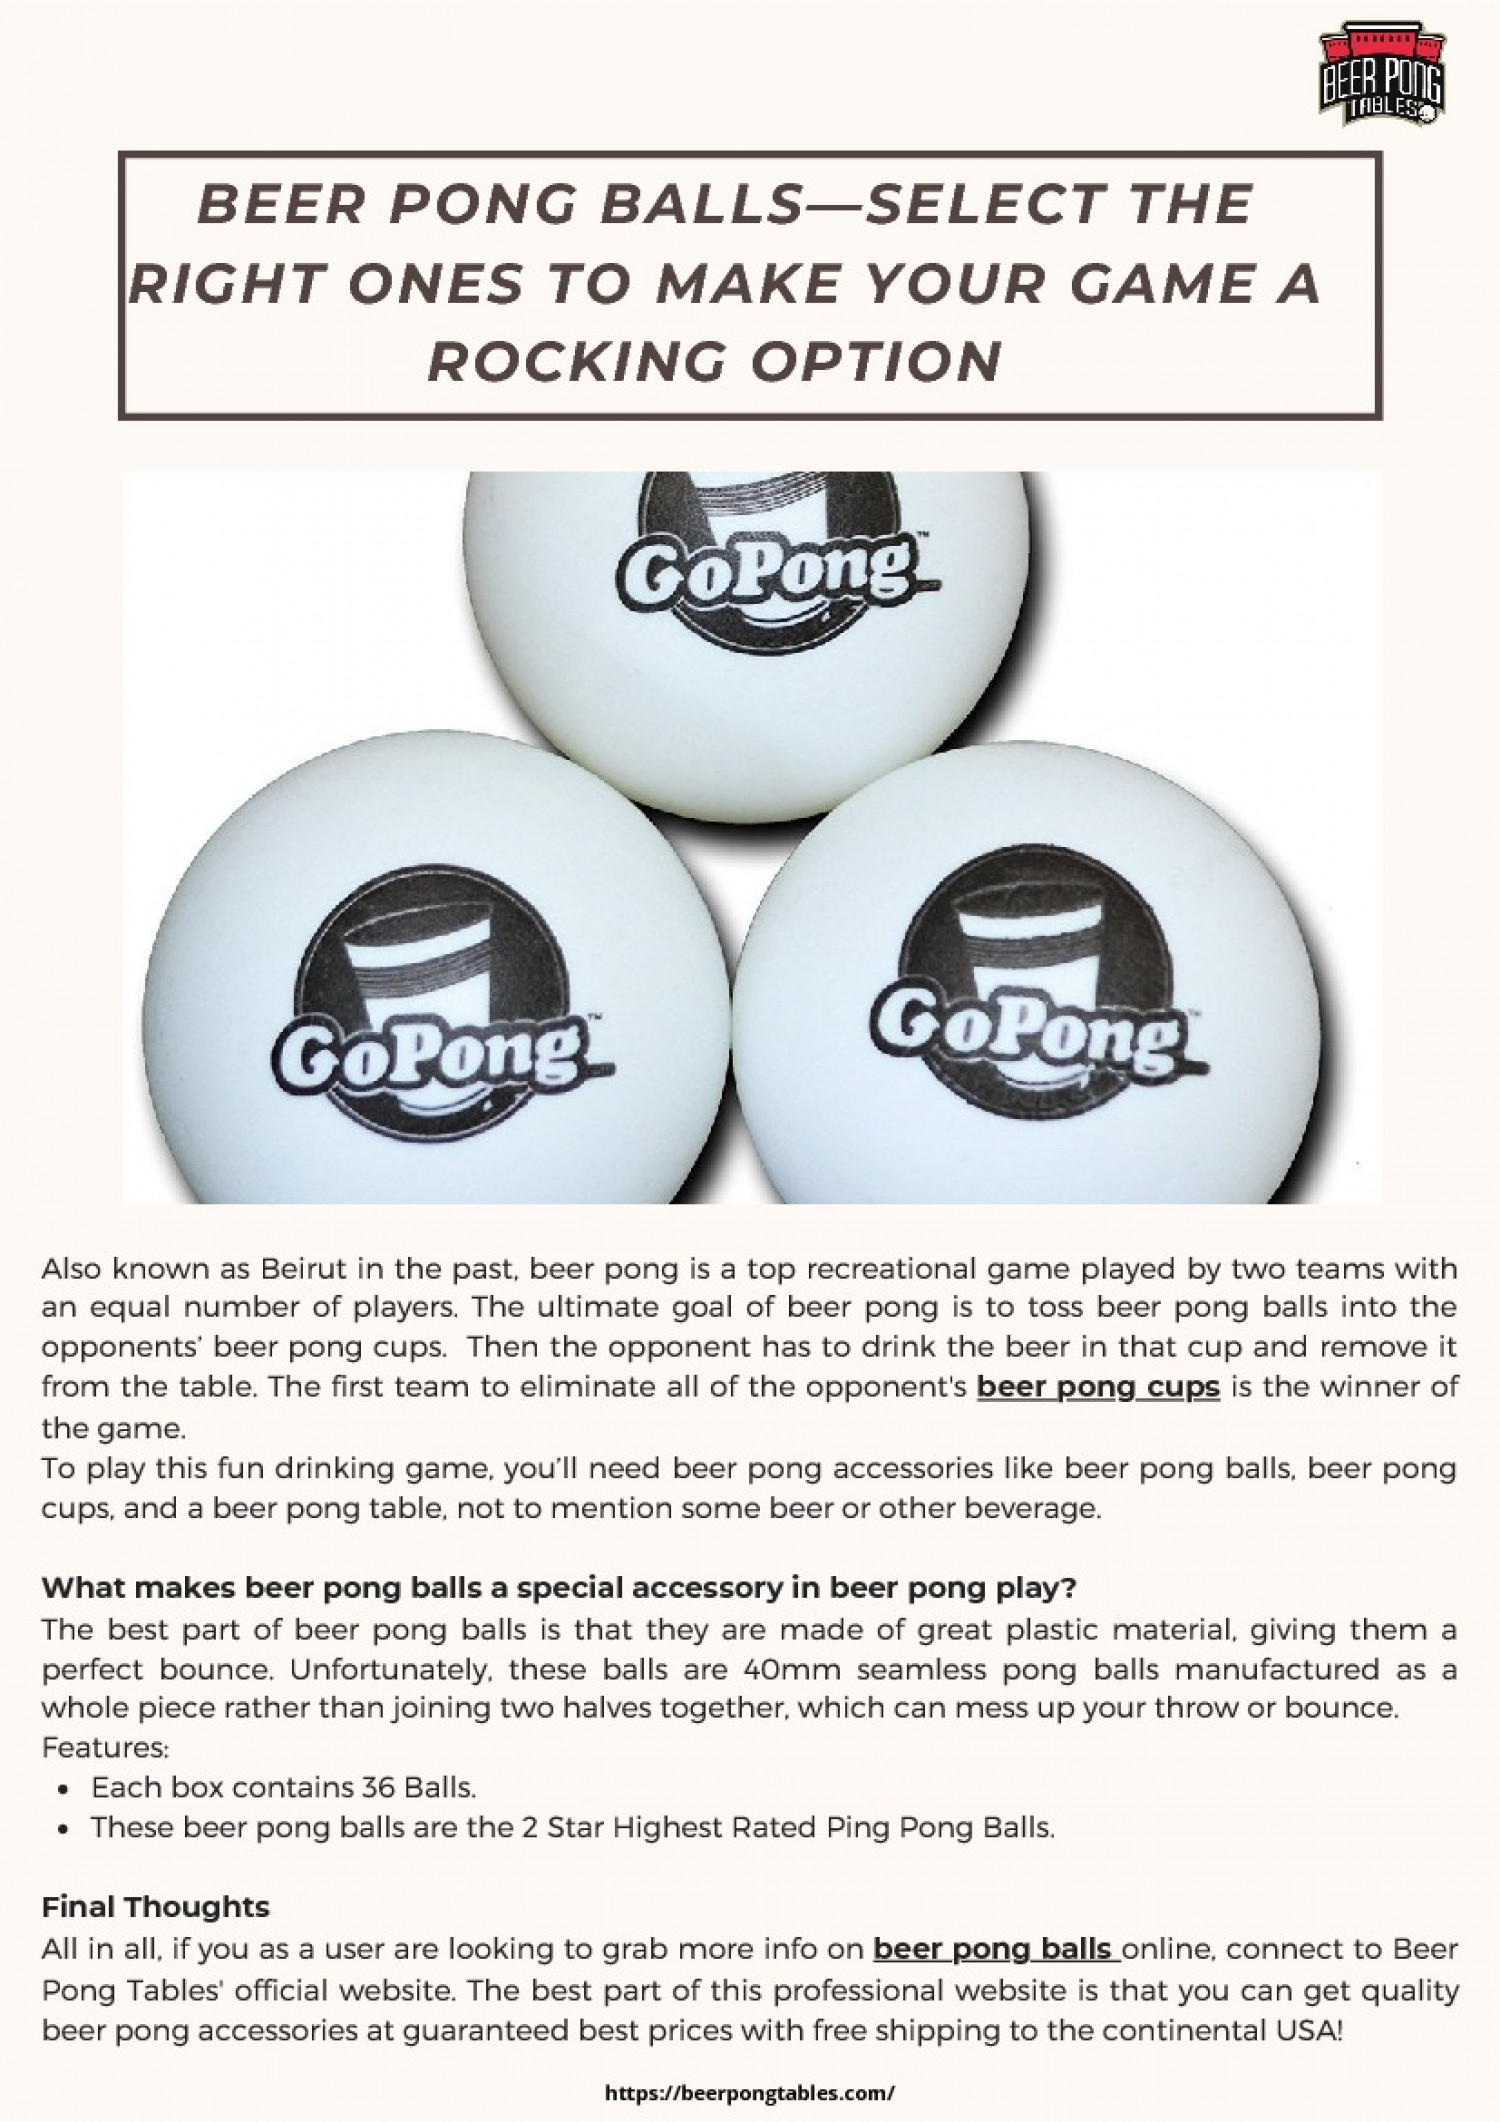 Beer Pong Balls—Select the Right Ones to make your Game a Rocking Option  Infographic